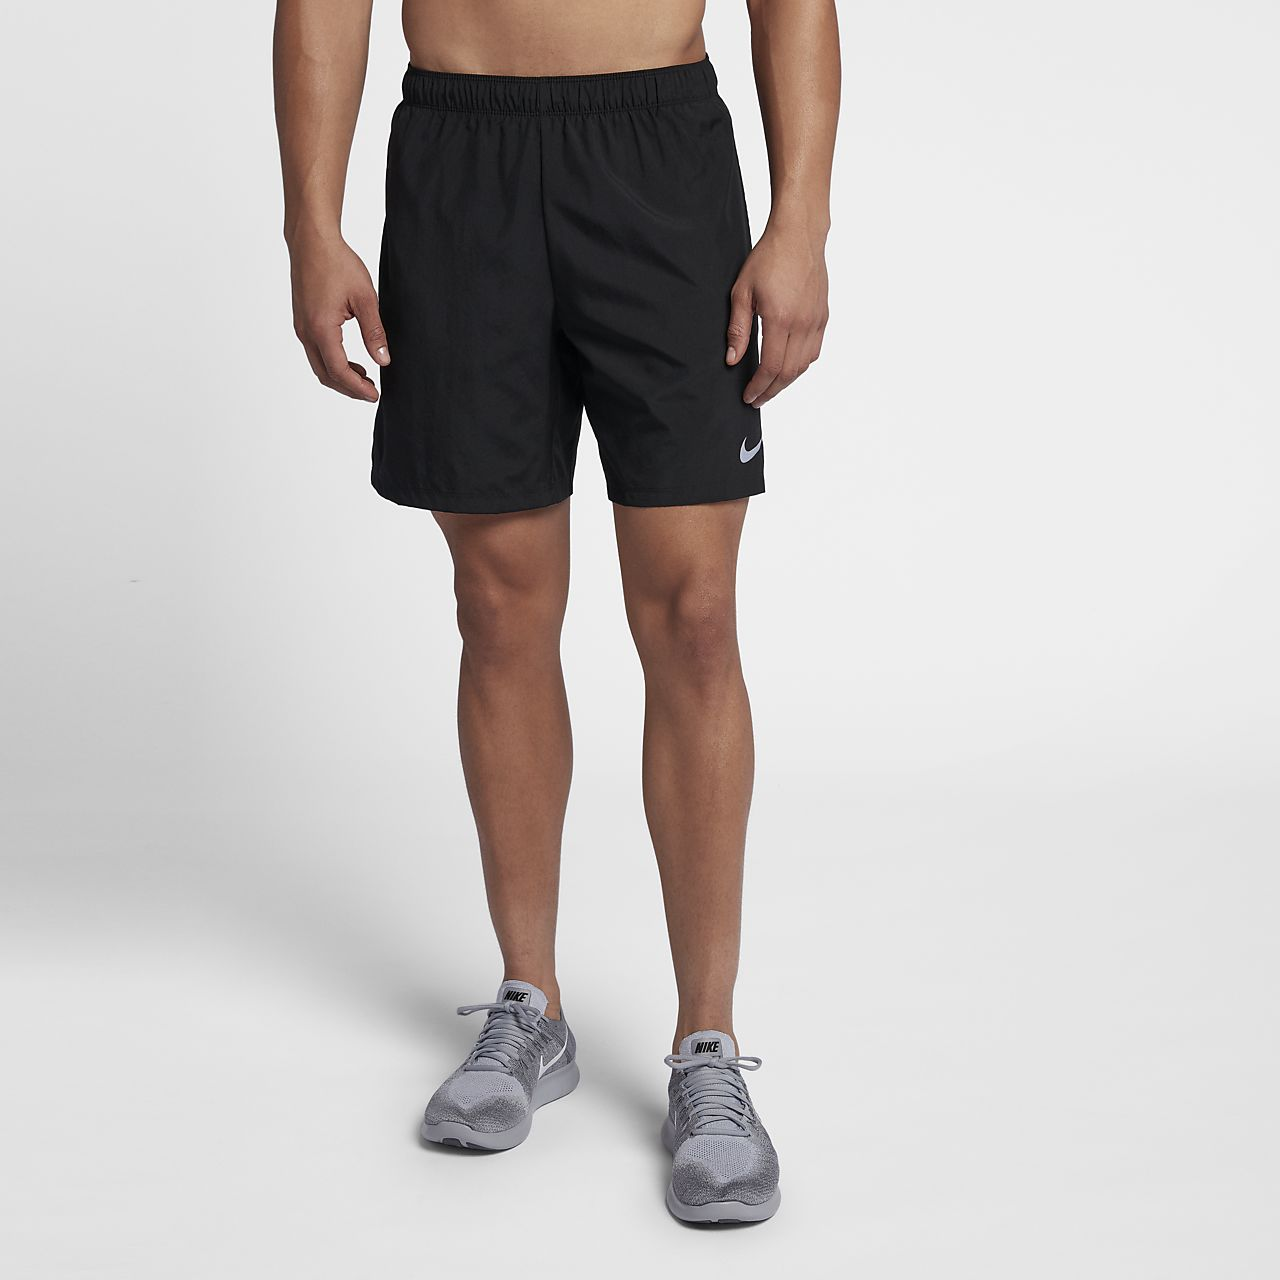 lowest price 86097 15804 Lined Running Shorts Nike Challenger Men s 7